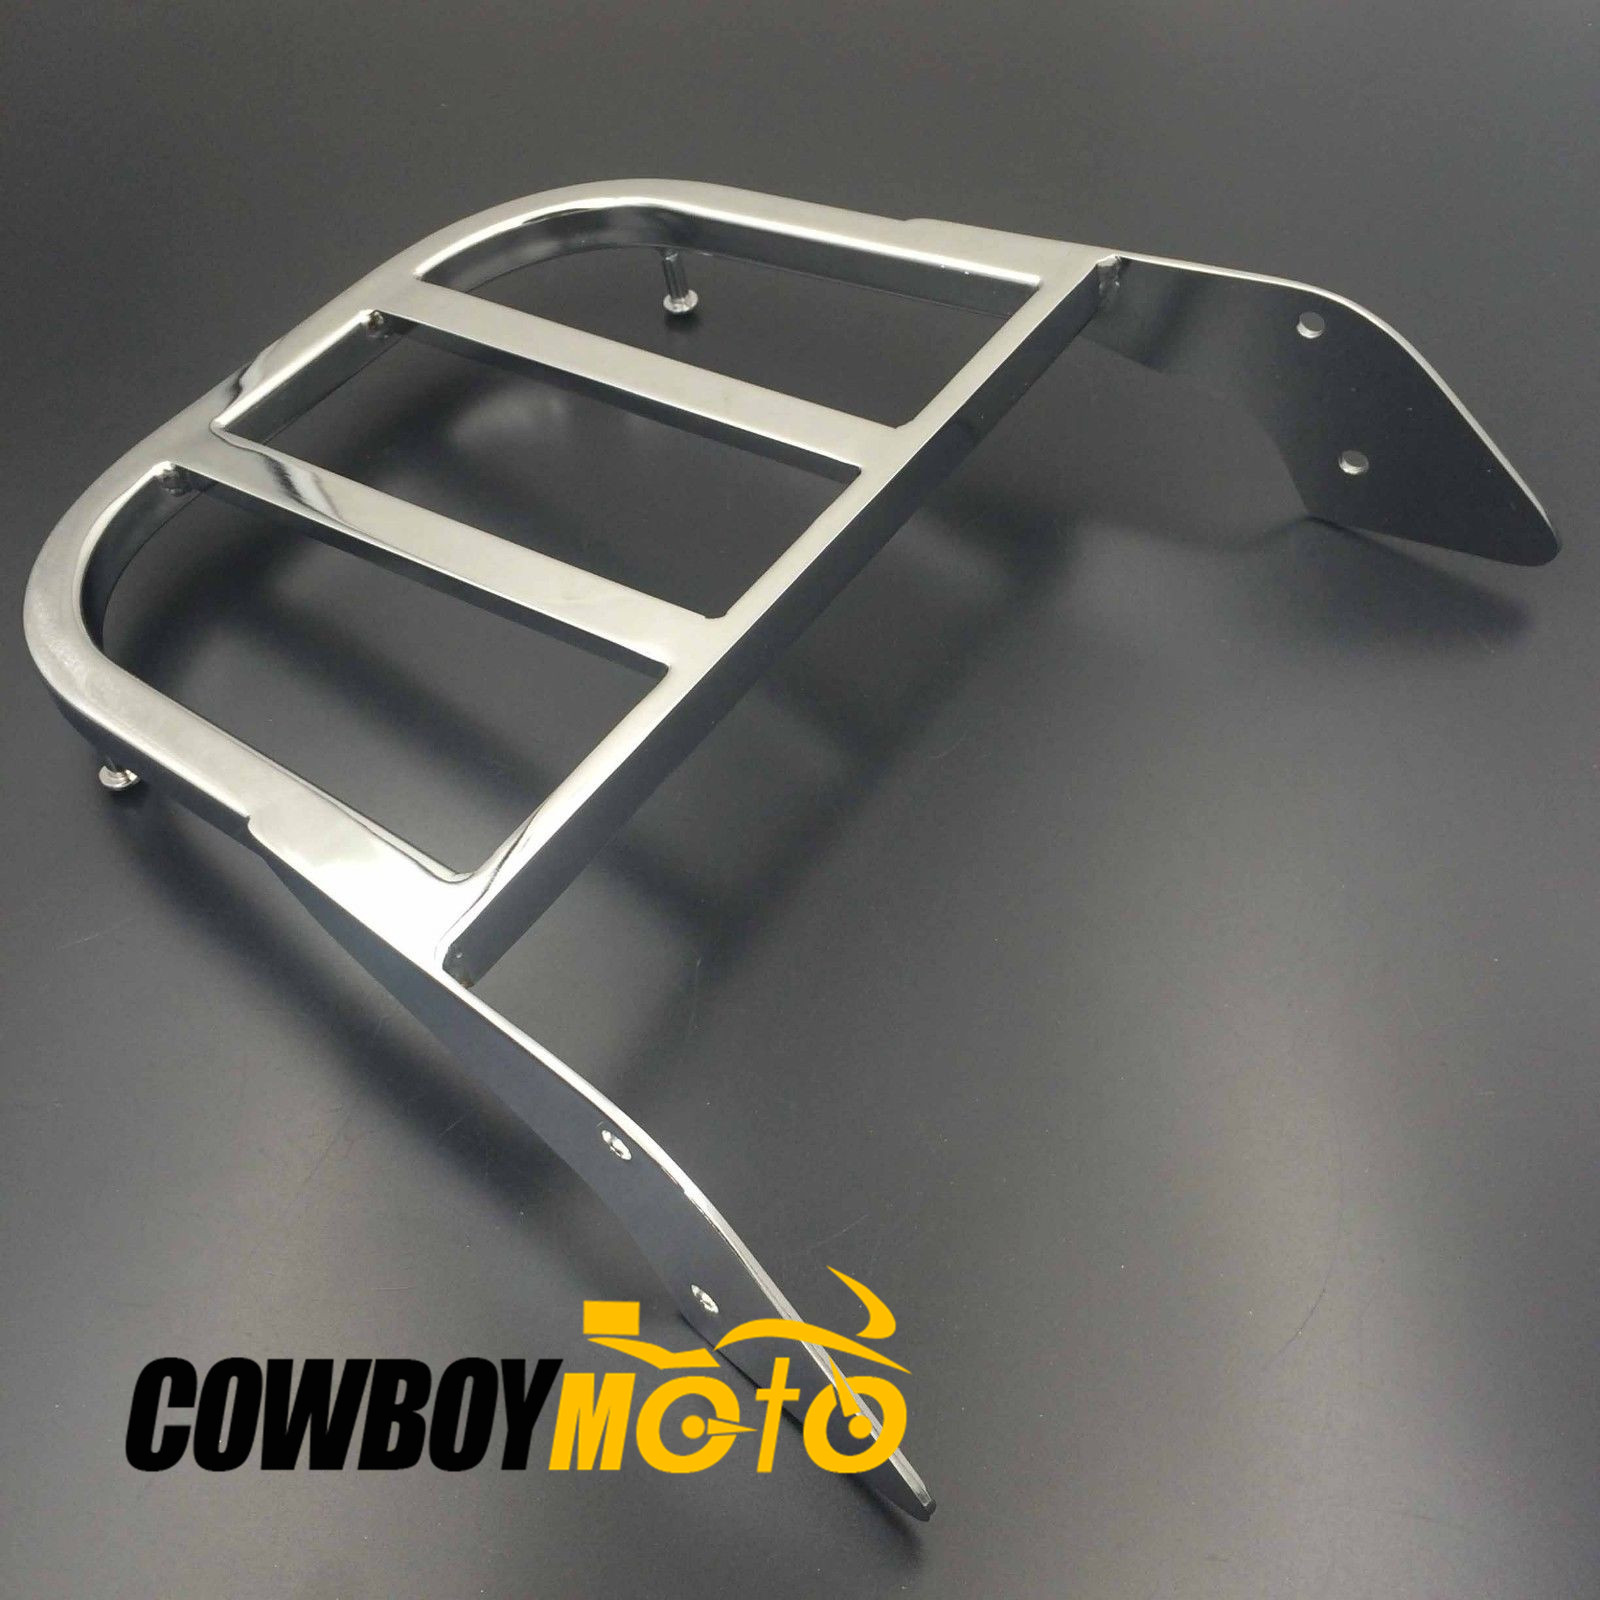 Motorcycle Sissy Bar Luggage Rack Carrier For Honda ACE 750 Spirit Aeri 1100 VLX 600 Magna Tourer Chrome